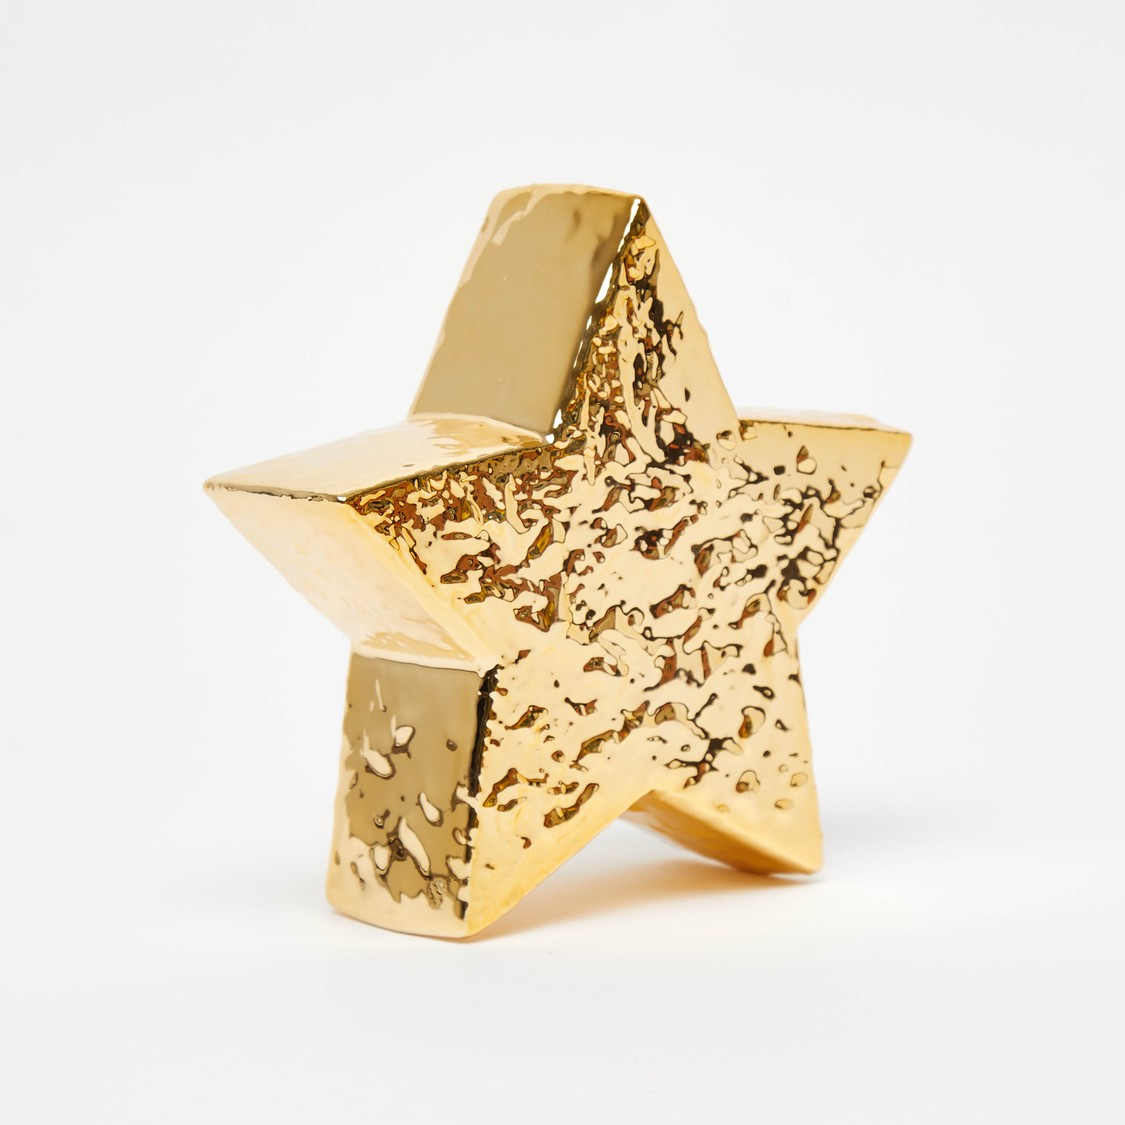 Star Shaped Decorative Decor